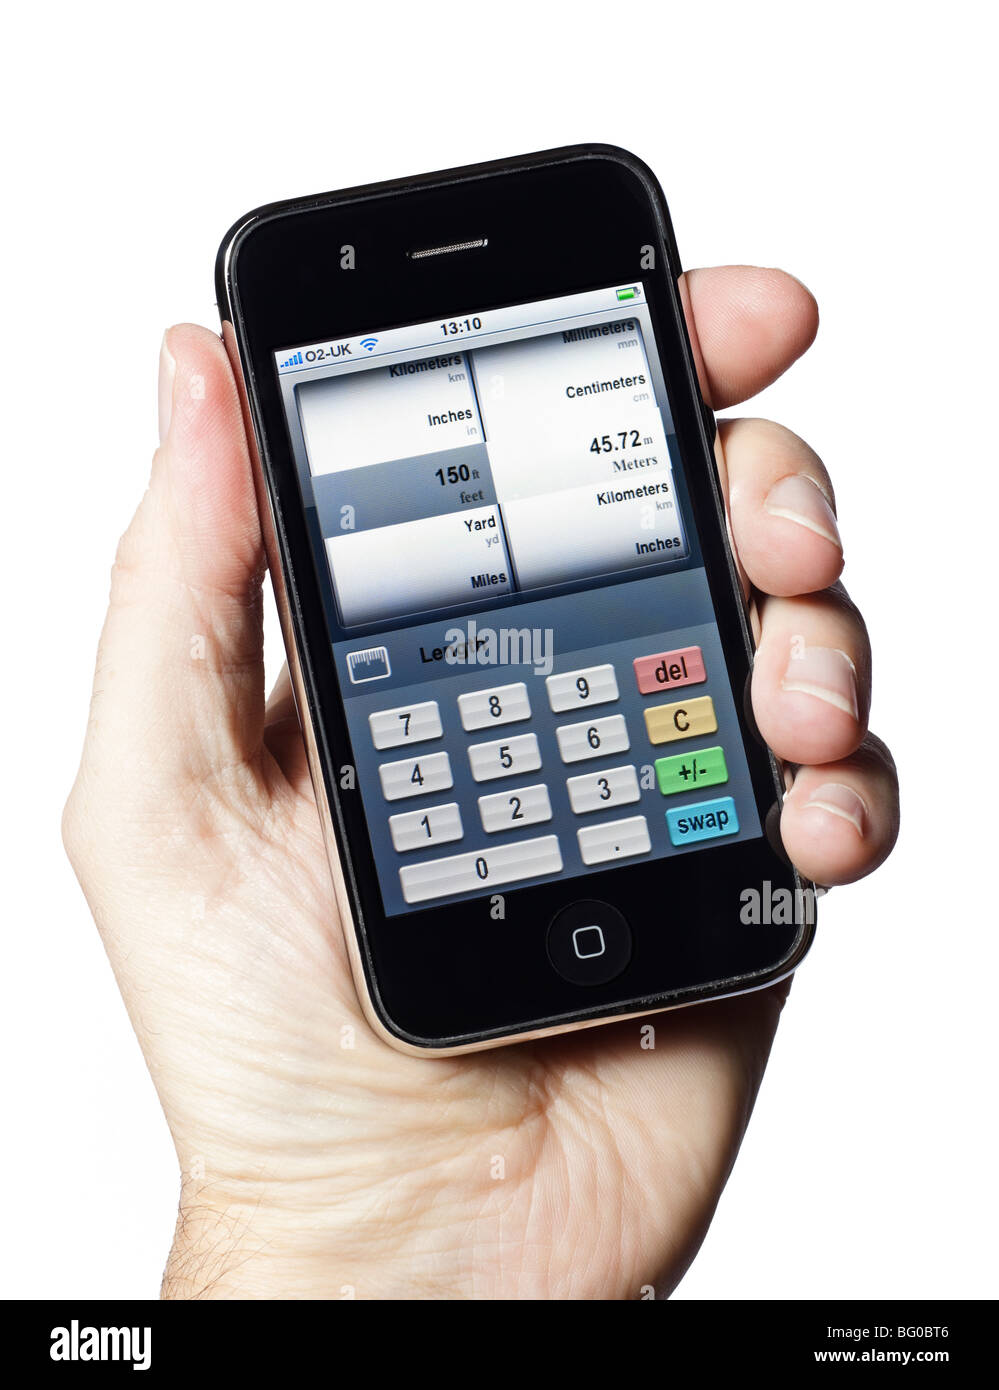 iPhone smartphone smart phone mobile phone with a unit conversion app - Stock Image